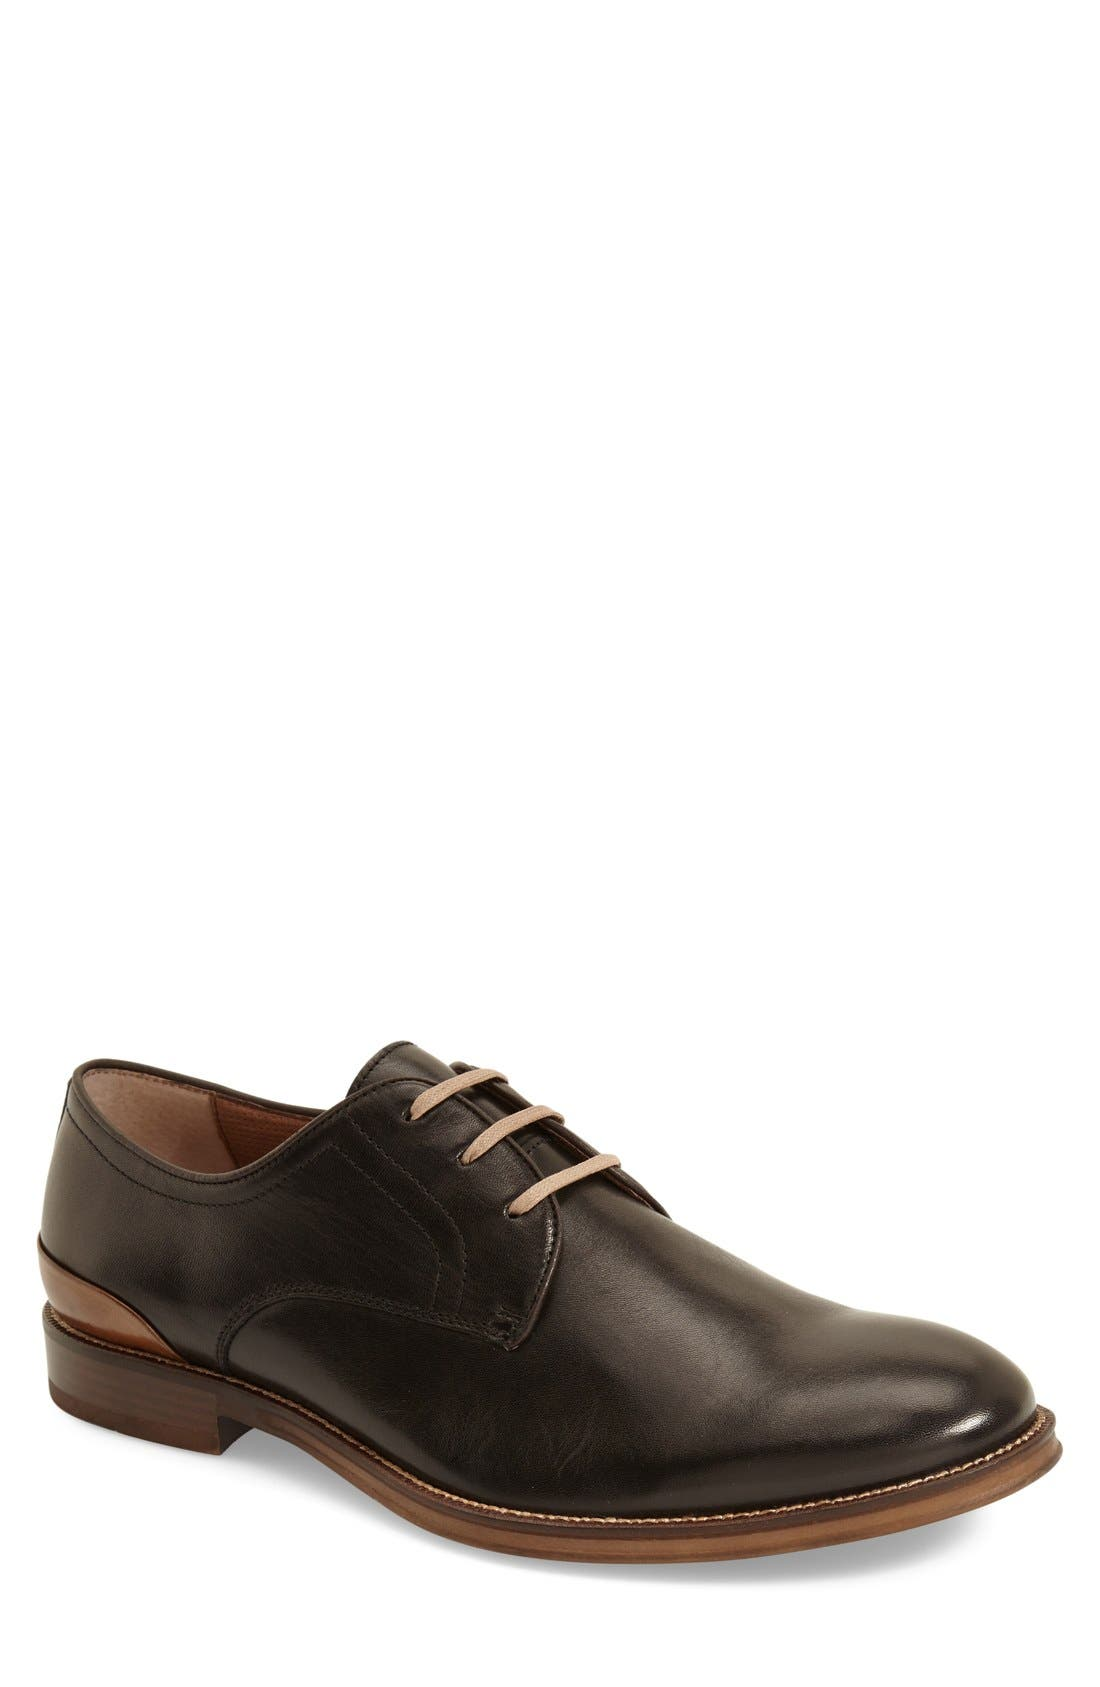 'Grayson' Plain Toe Derby,                             Main thumbnail 1, color,                             001